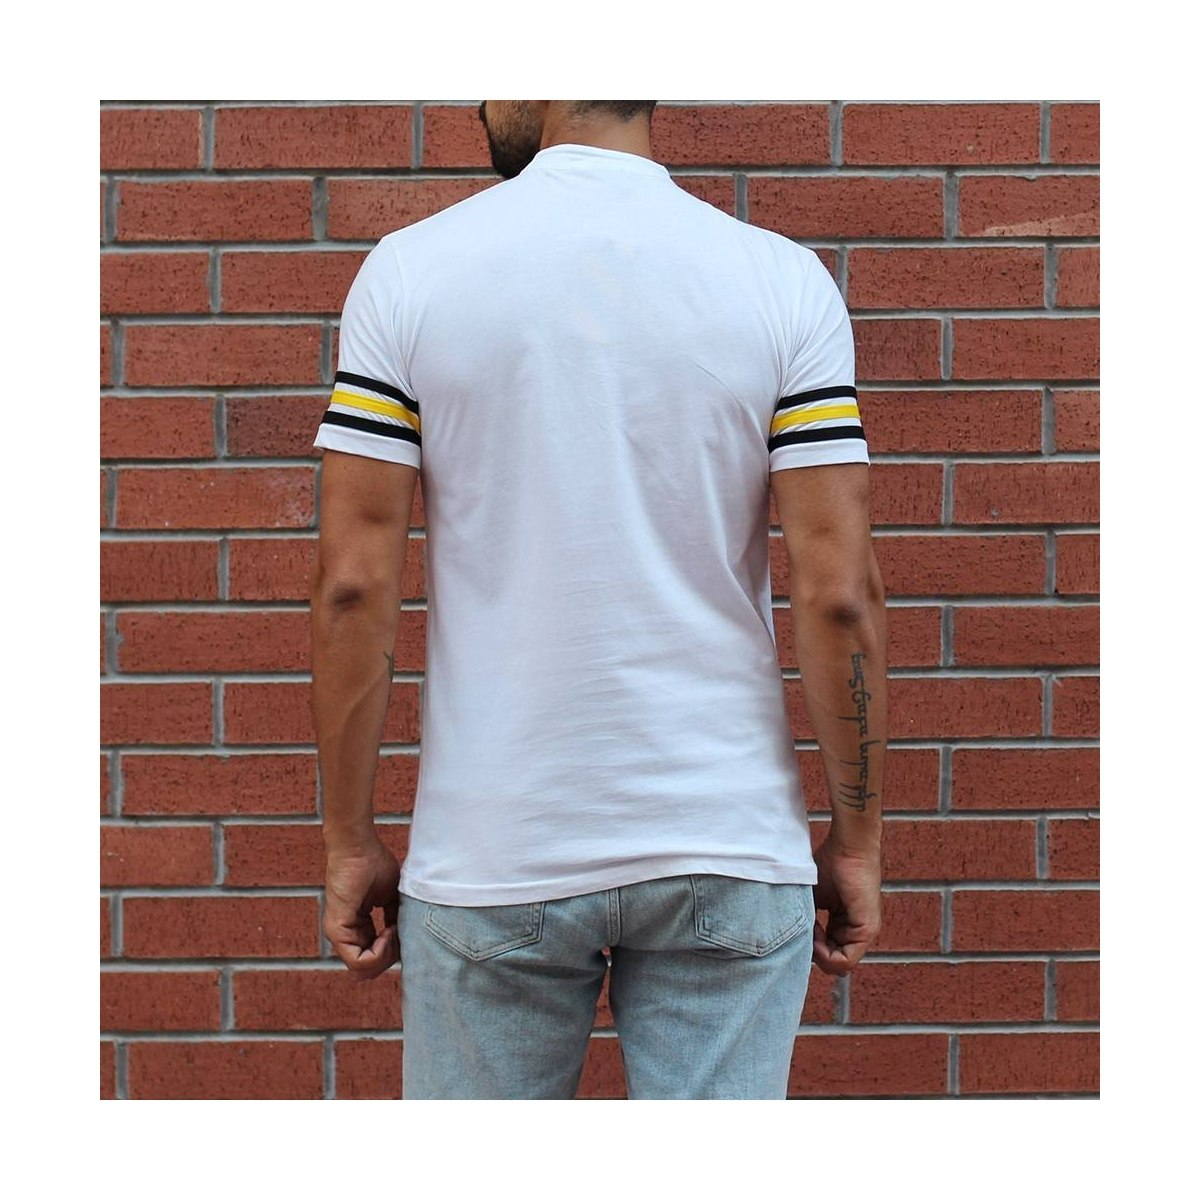 Men's Button Neck Slim Fit T-Shirt With Colored Arm White MV T-shirt Collection - 3